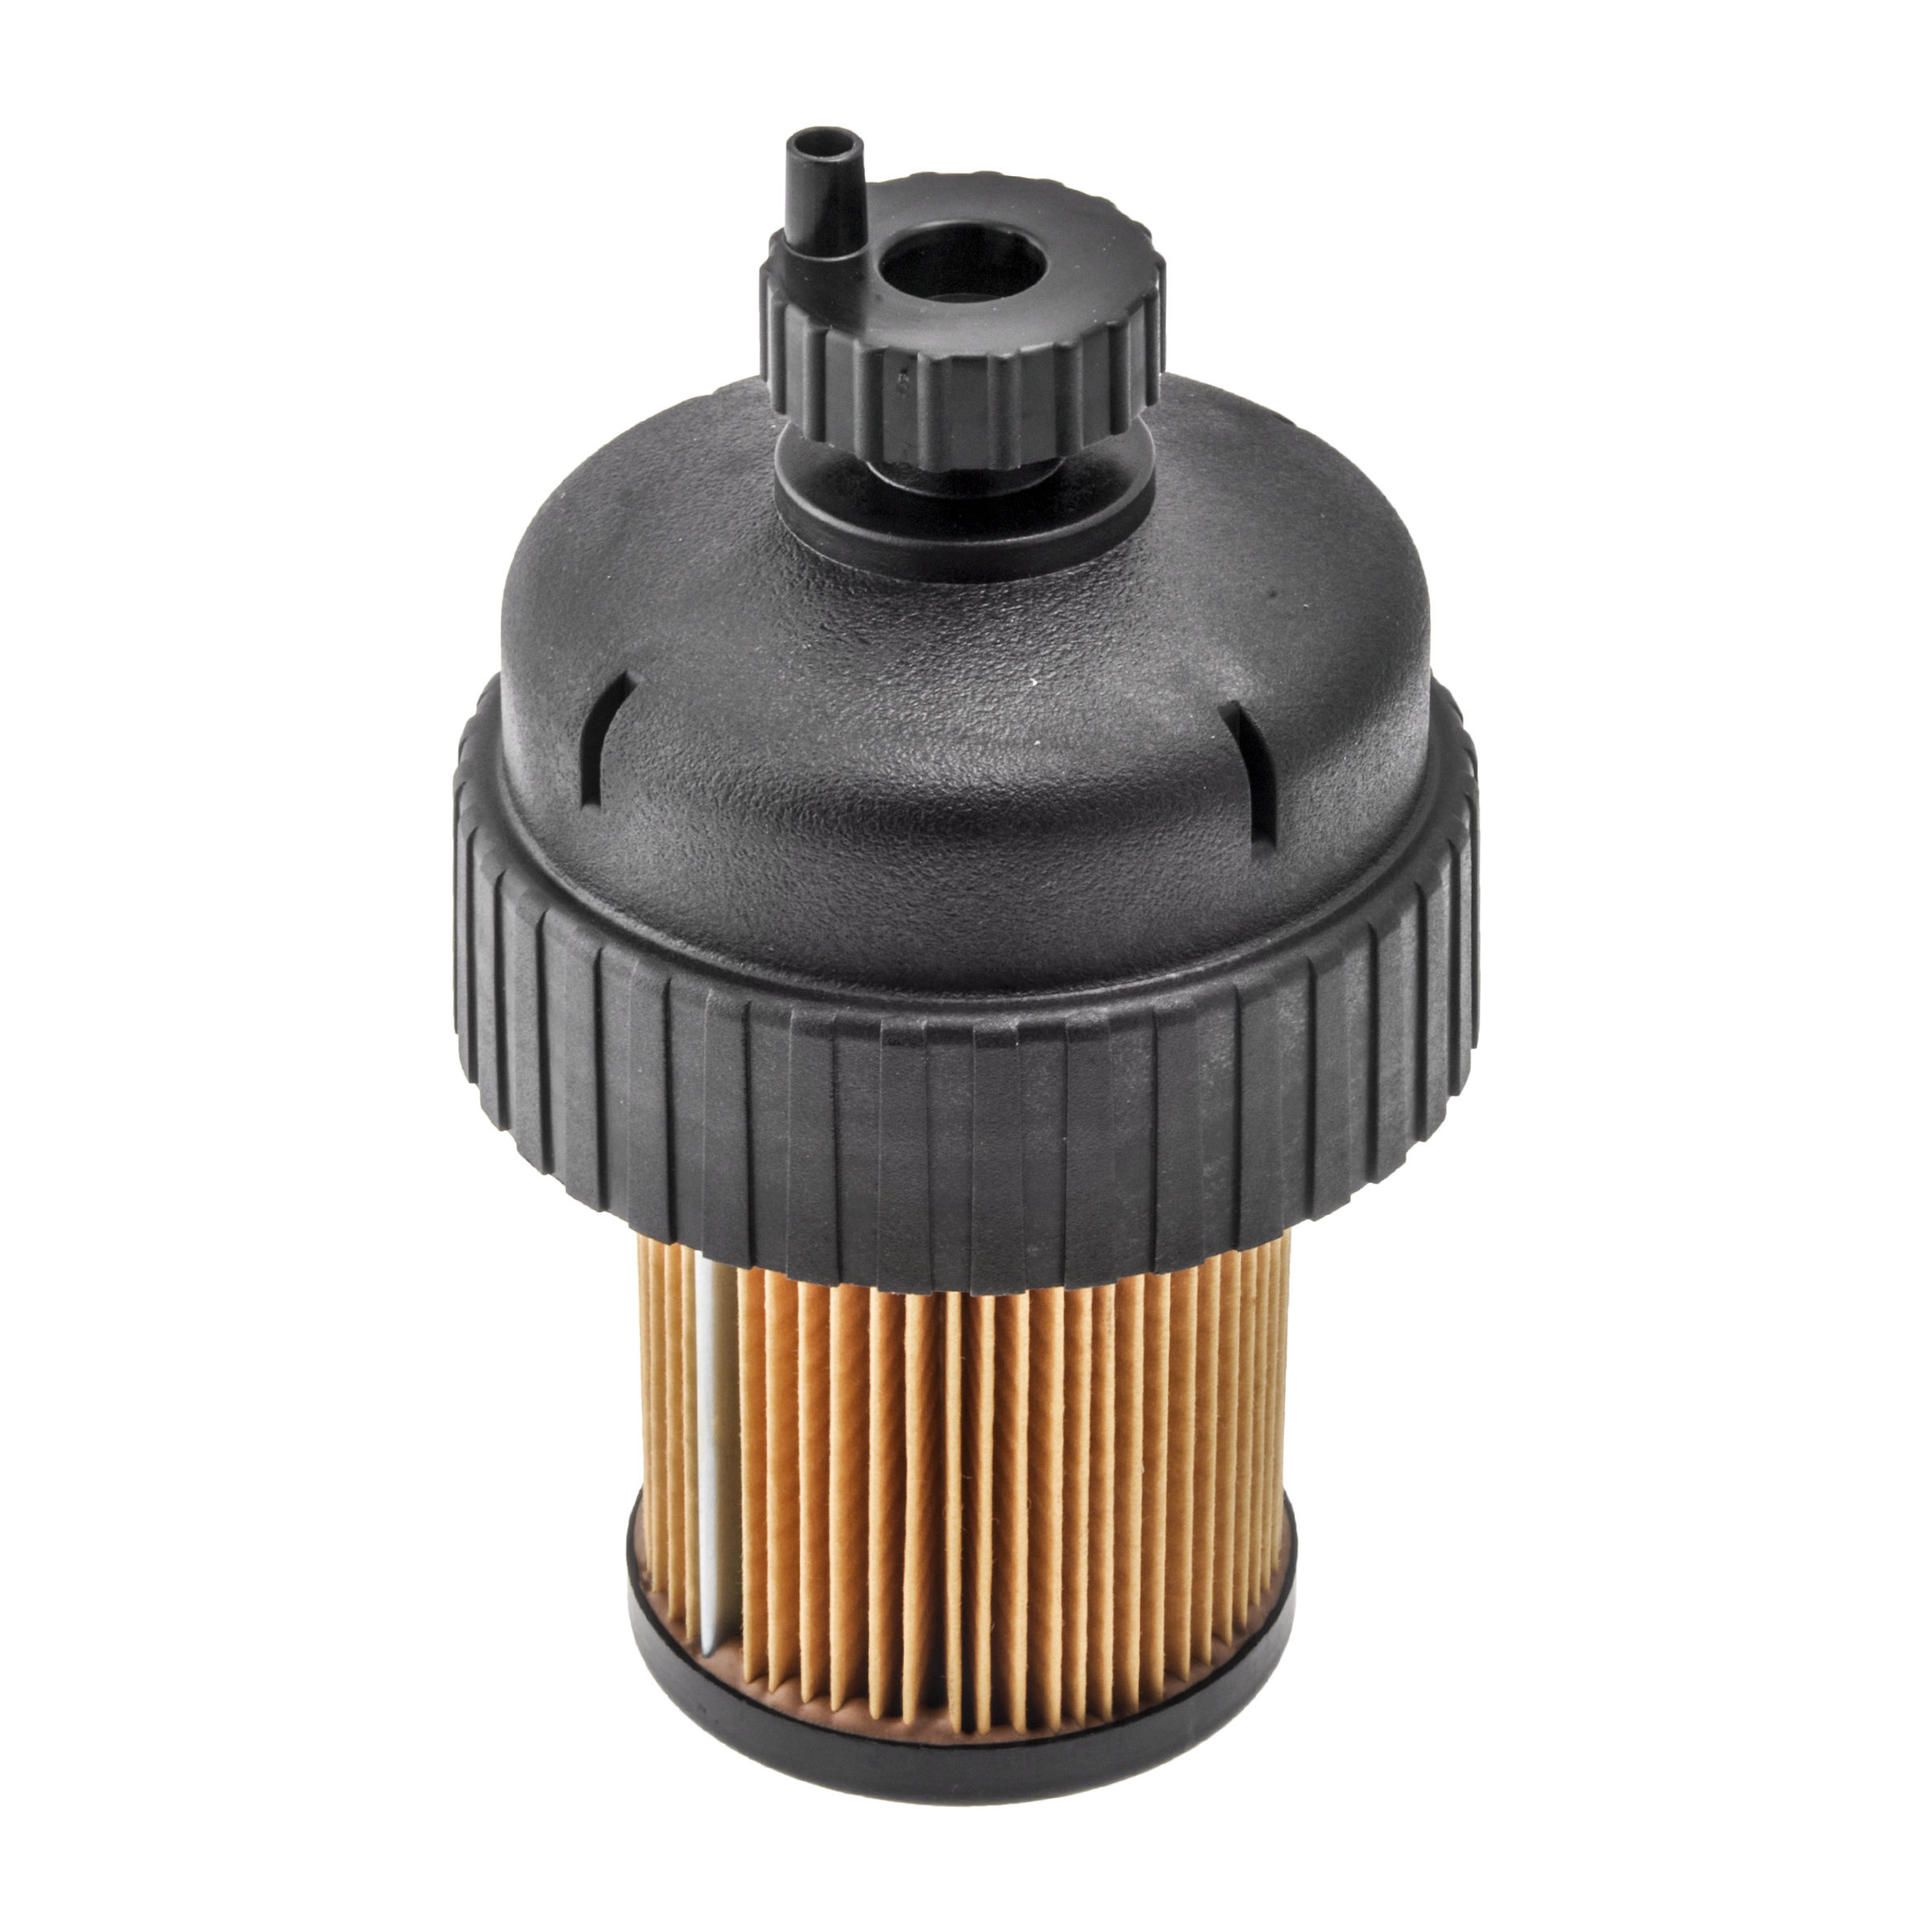 new herko fuel filter and cap fgm33 for chevrolet gmc 6 5l